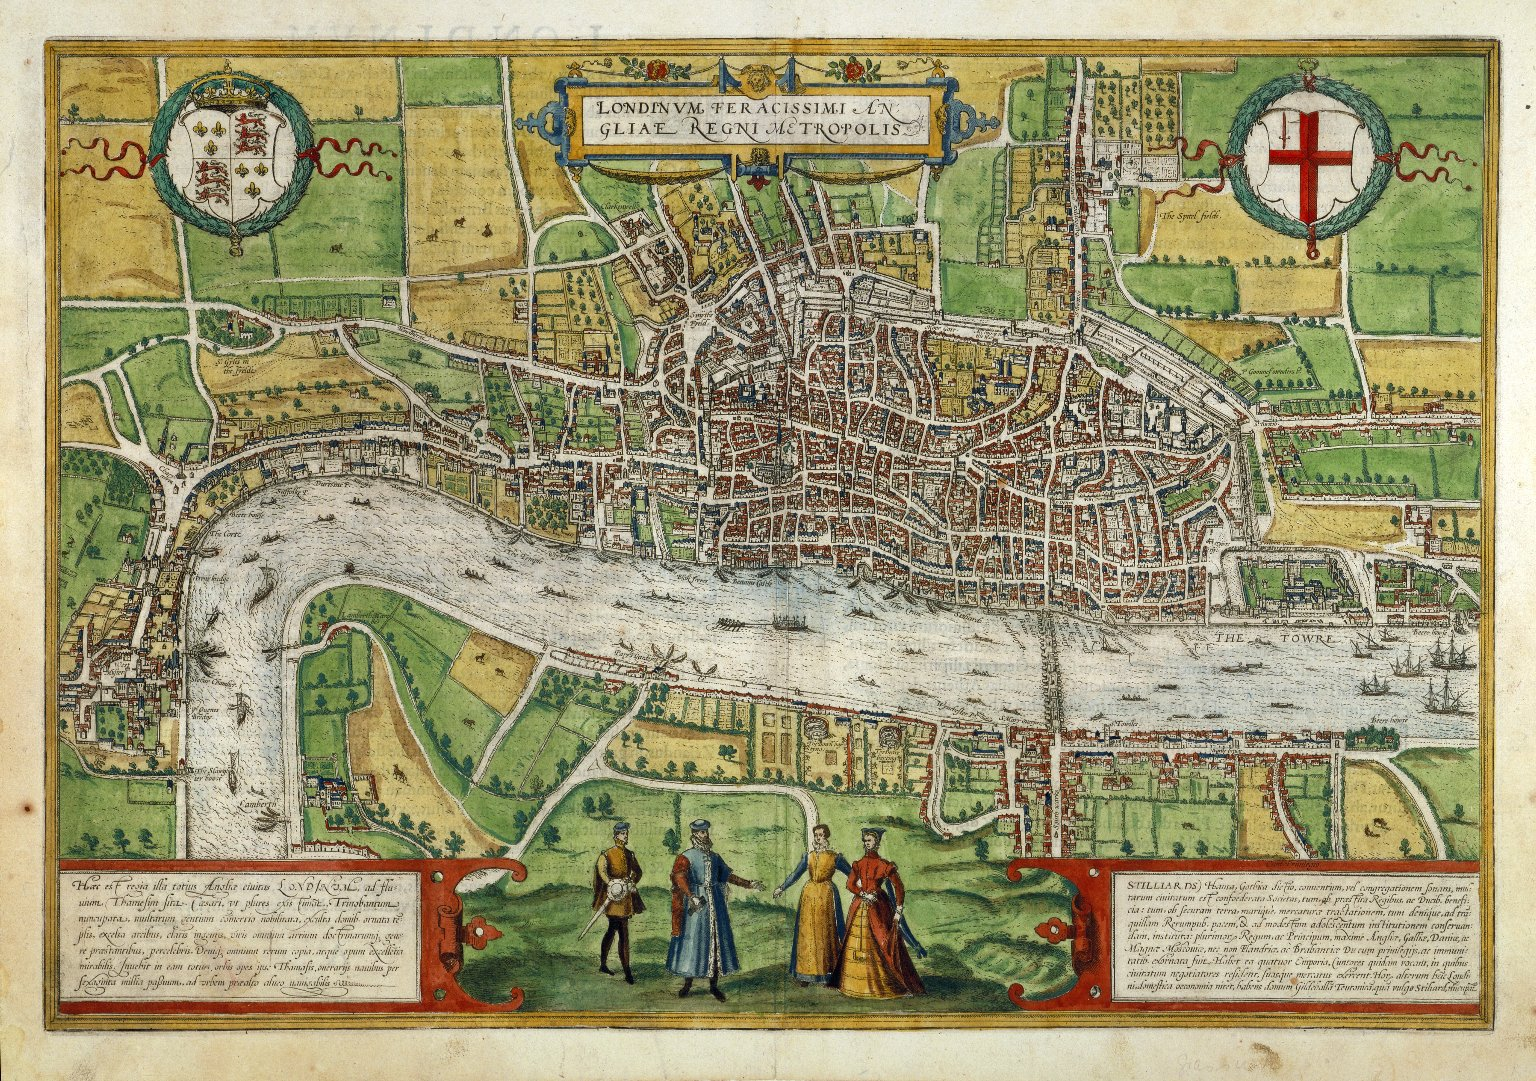 Hand-coloured map of London cut from 1635 edition of Georg Braun and Franz Hogenberg, Civitatis Orbis Terrarum.  MAP L85c no.27 (Digital Image File 3371). Used by permission of the Folger Shakespeare Library under a CC BY-SA 4.0 license. For better image resolution, view the image in LUNA.